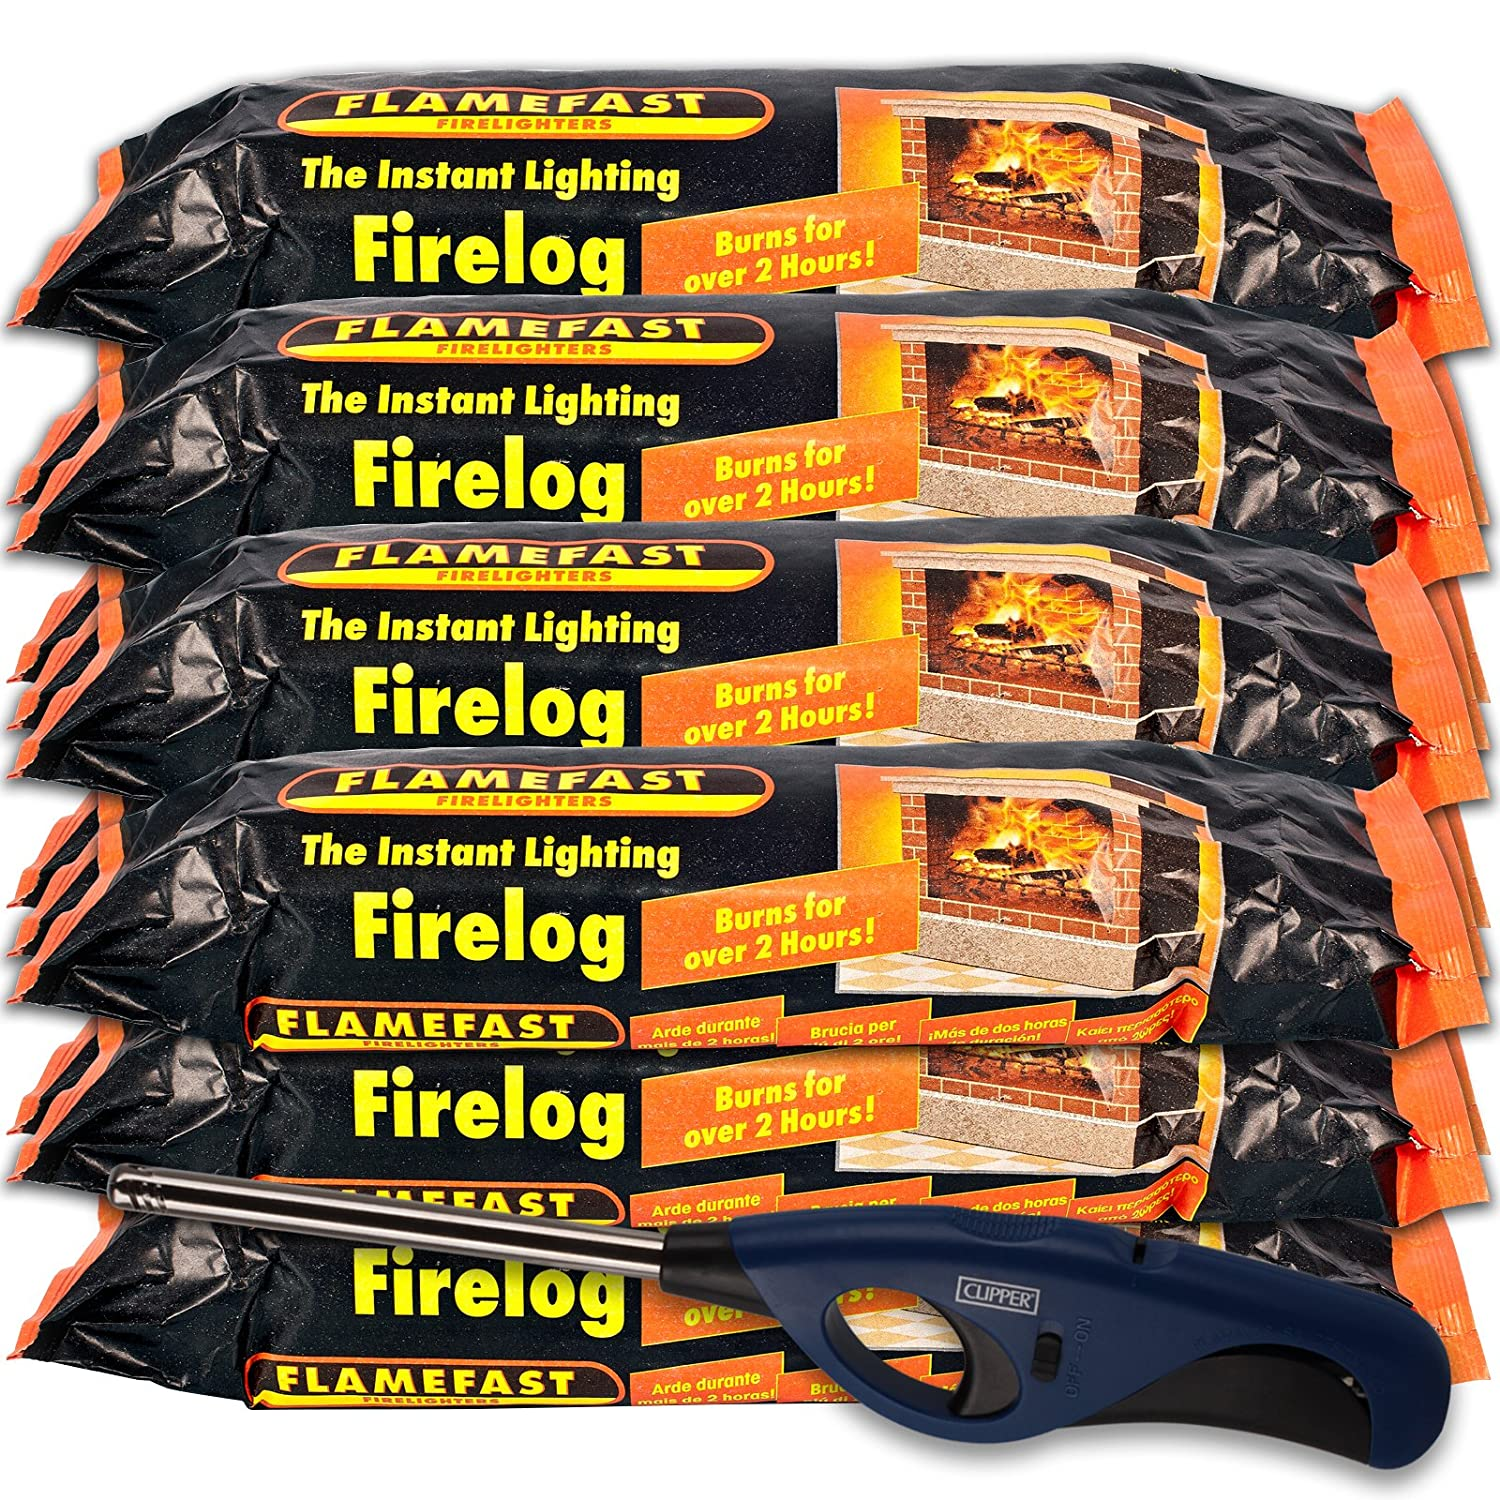 1 X Flamefast Instant Lighting Smokeless Firelog Burns for Over 2 Hours with Refillable Long Reach Tube Nose Clipper Lighter & Tigerbox Safety Matches